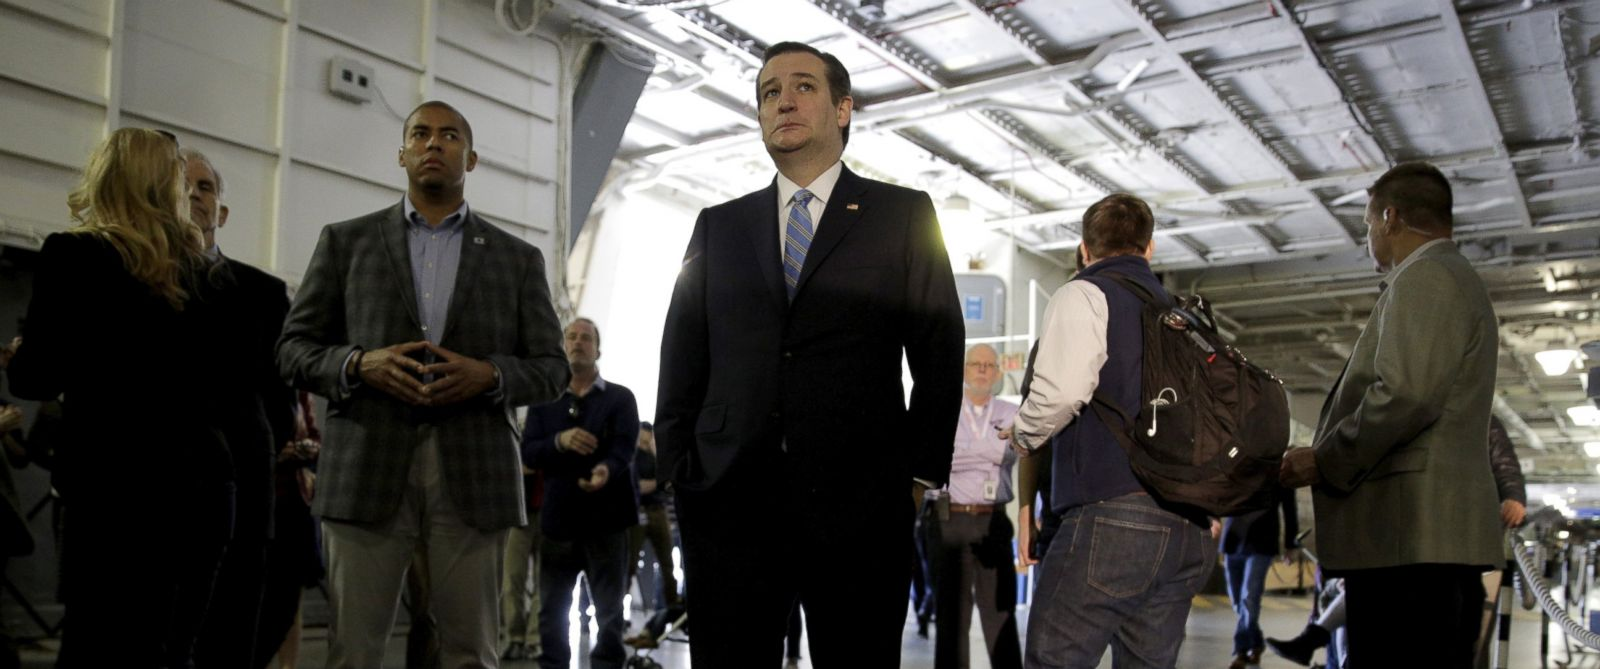 PHOTO: Ted Cruz before a campaign event on the USS Yorktown in Mount Pleasant, South Carolina Feb. 16, 2016.